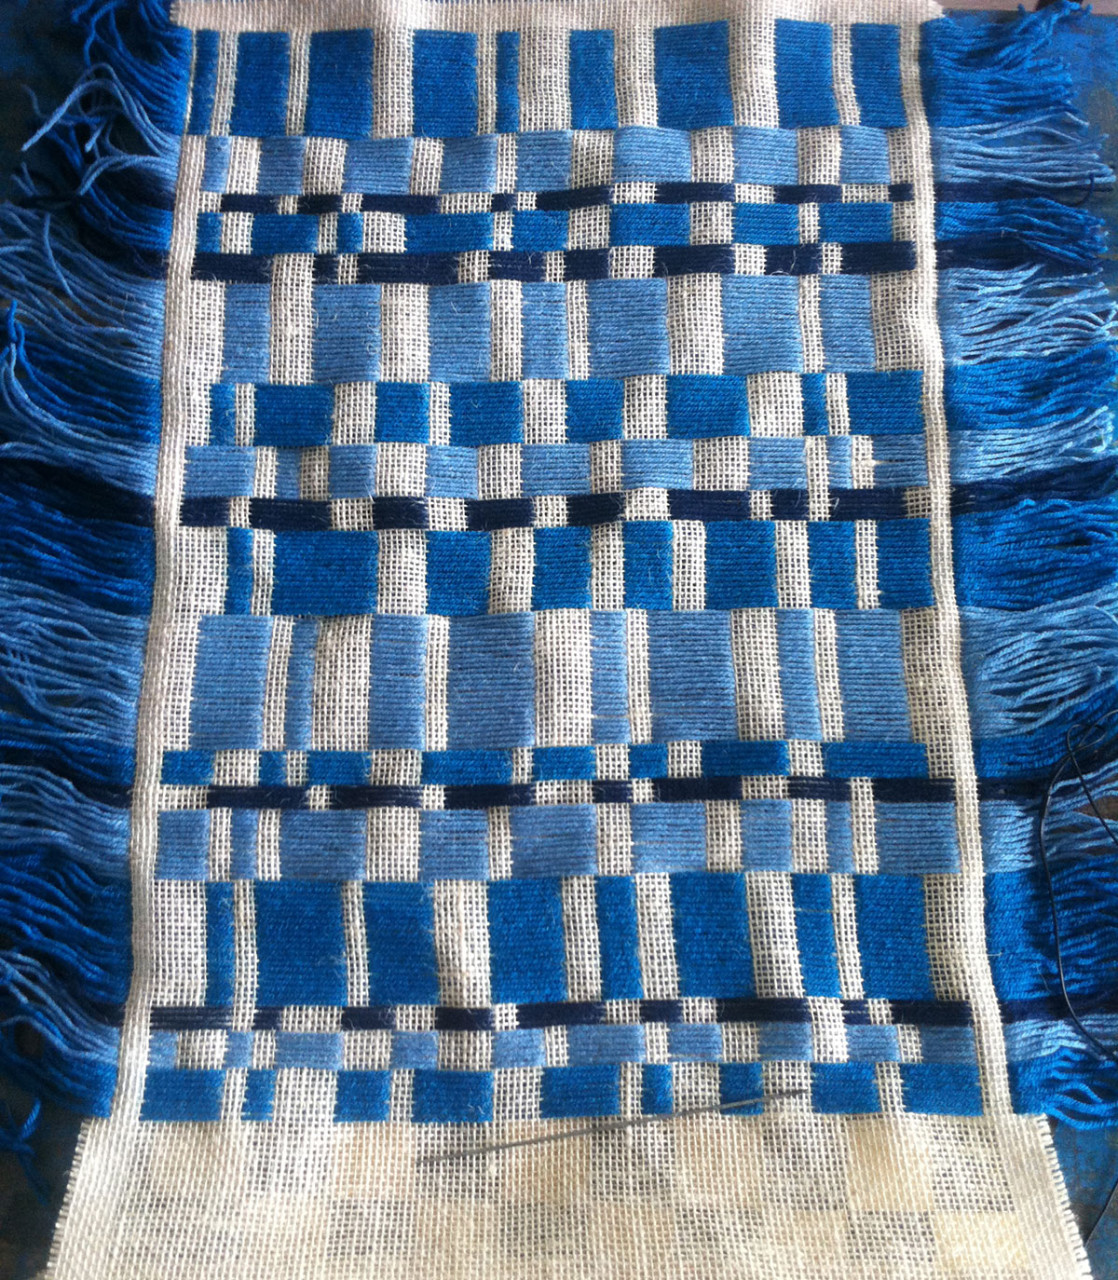 embroidery_burlap_annienke_blue_2